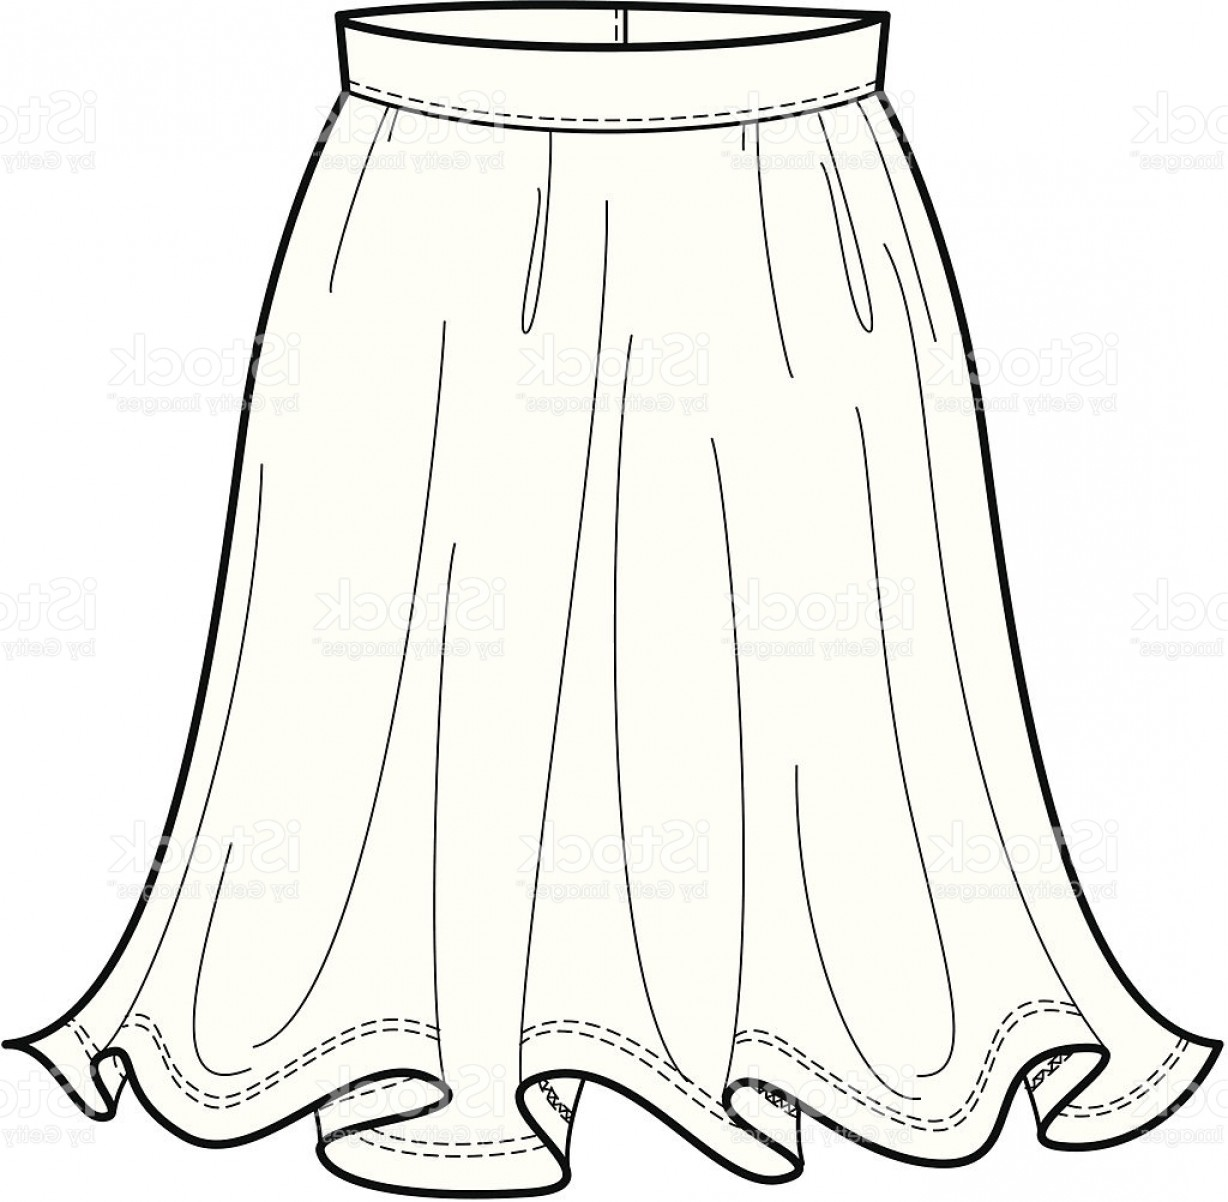 Fashion Illustration Of A Flowing Skirt Gm.